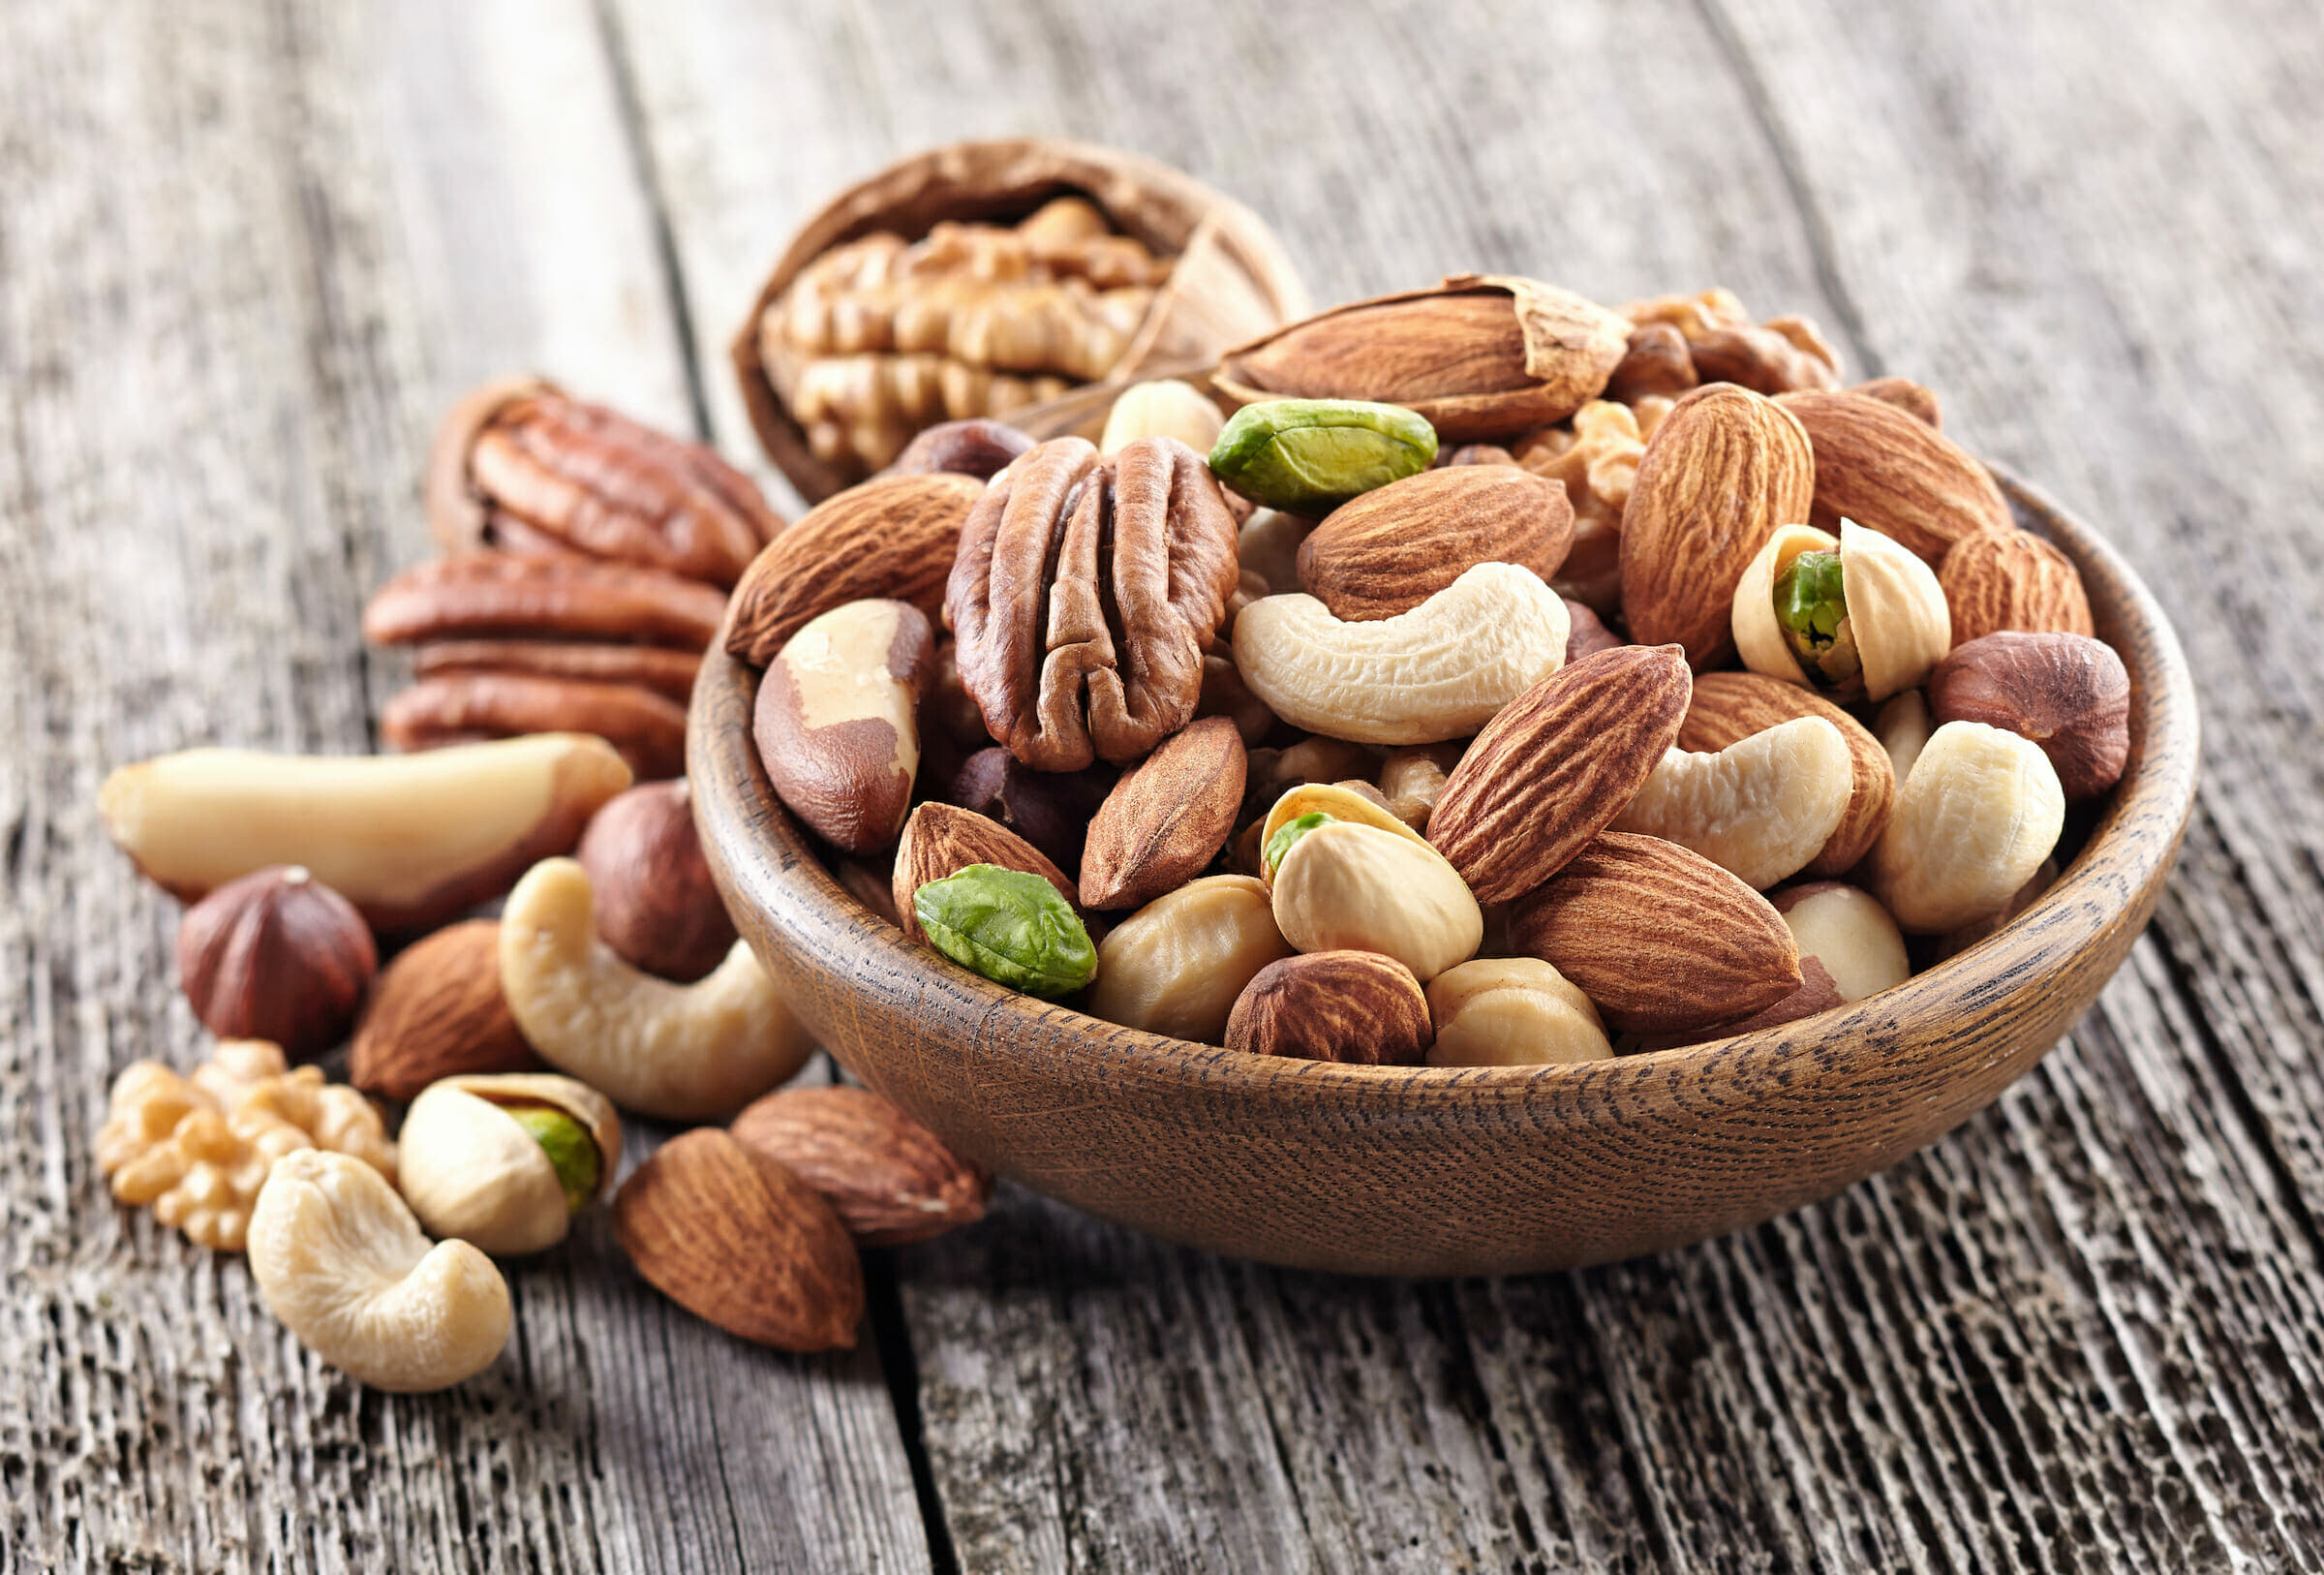 Best nuts and seeds for keto